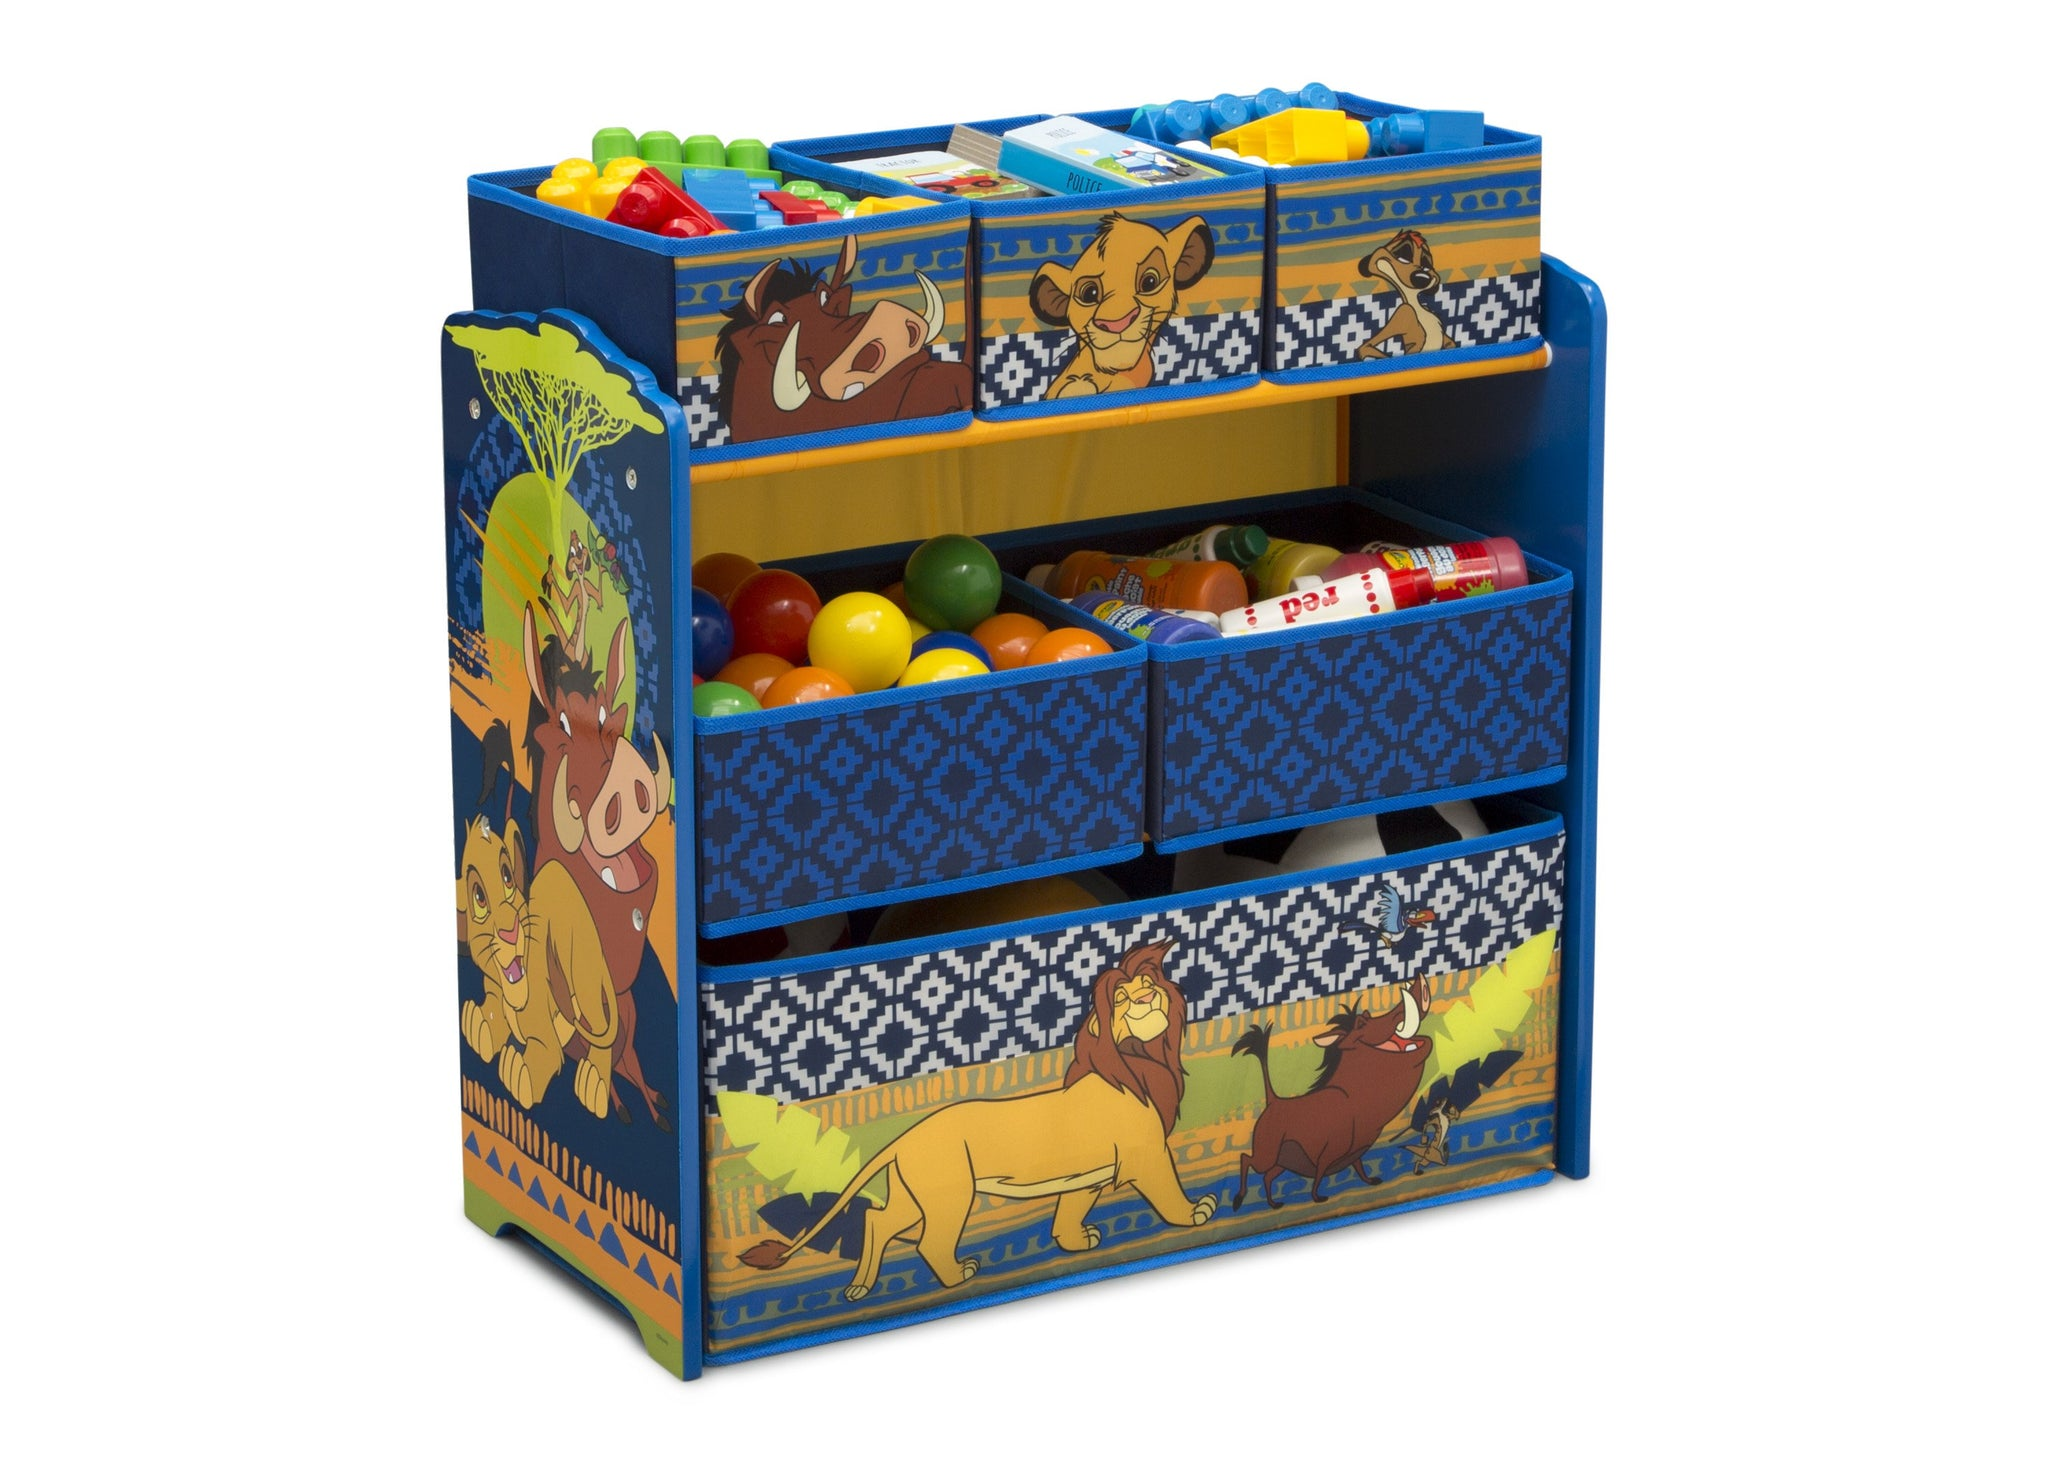 Delta Children The Lion King (1079) 6-Bin Design & Store Toy Storage Organizer, Right Silo View